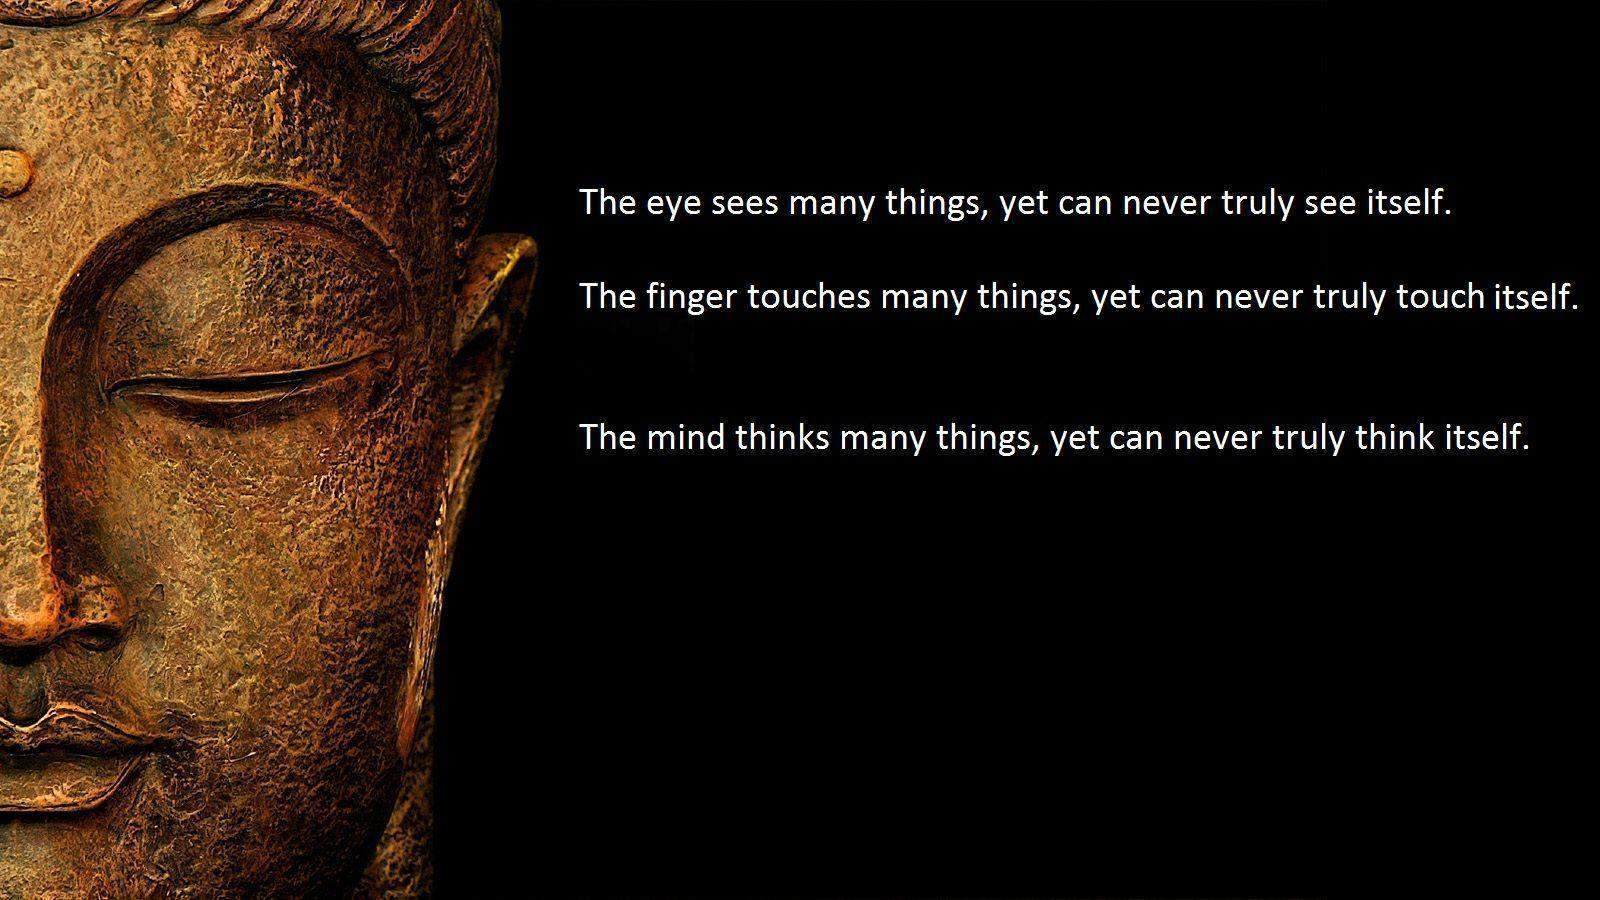 Create Quotes For Desktop Wallpaper Buddha Quotes Wallpapers Wallpaper Cave